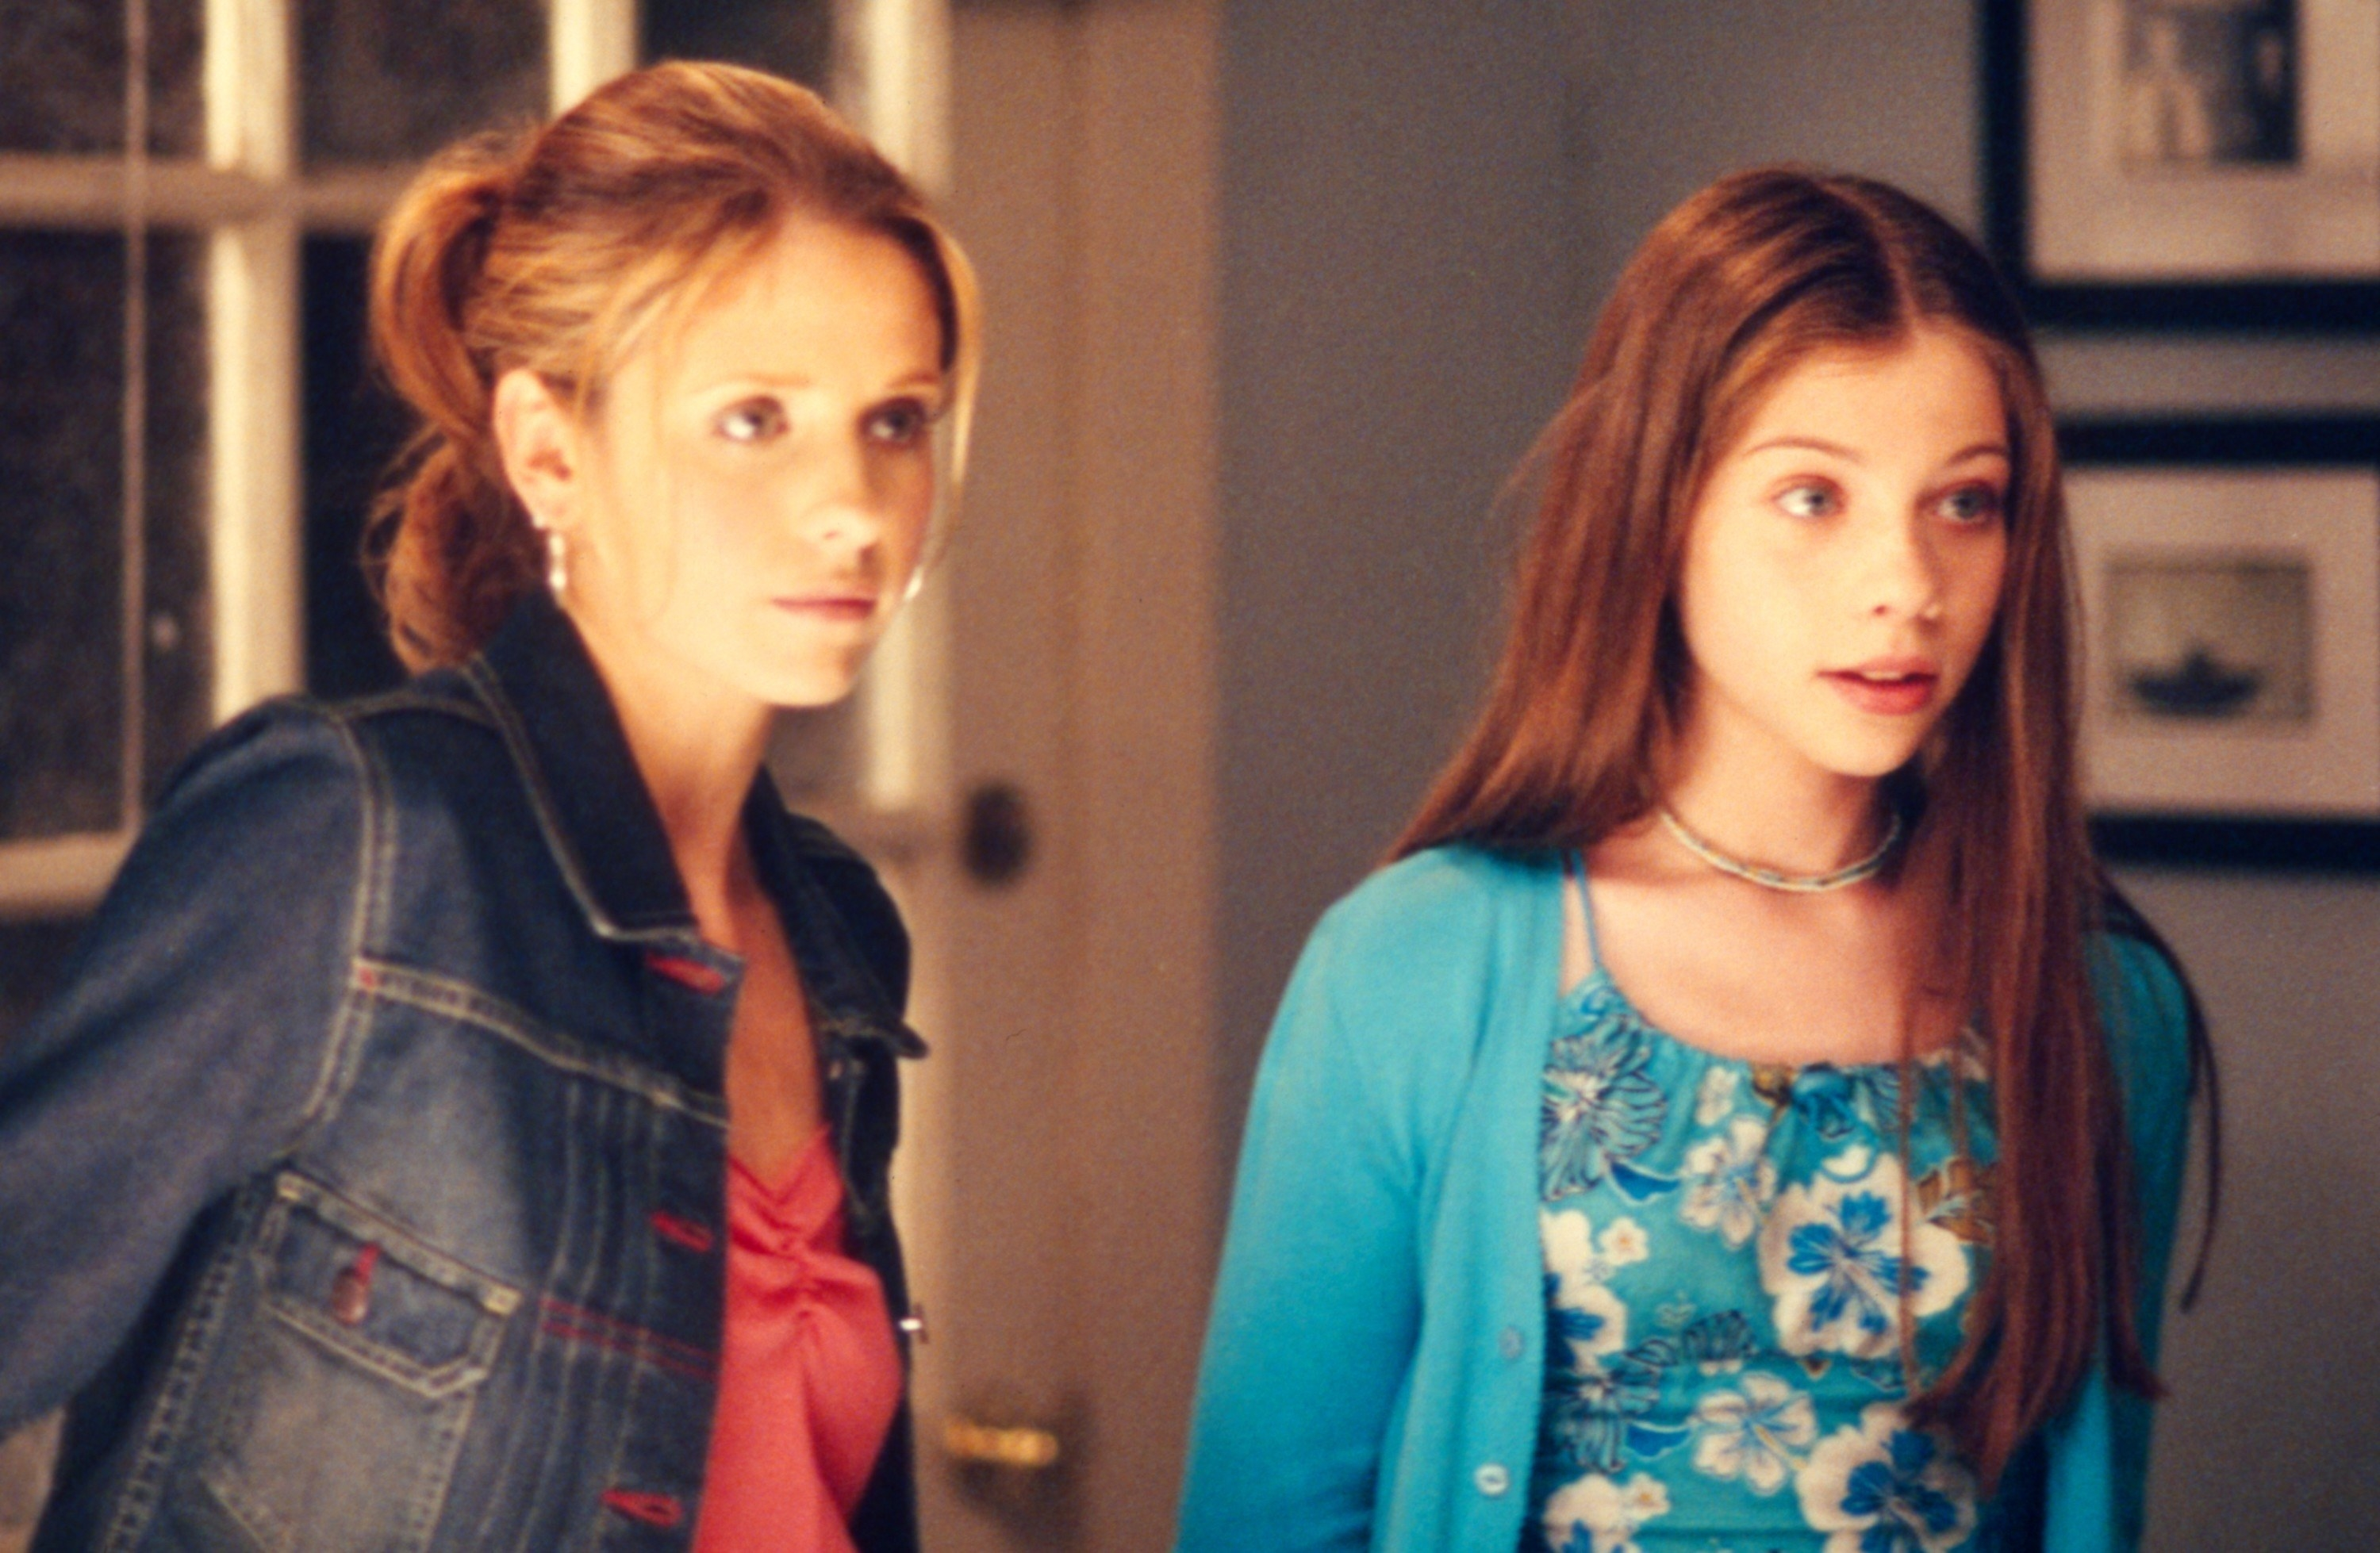 Sarah Michelle Gellar and Michelle Trachtenberg stand next to each other in Buffy the Vampire Slayer